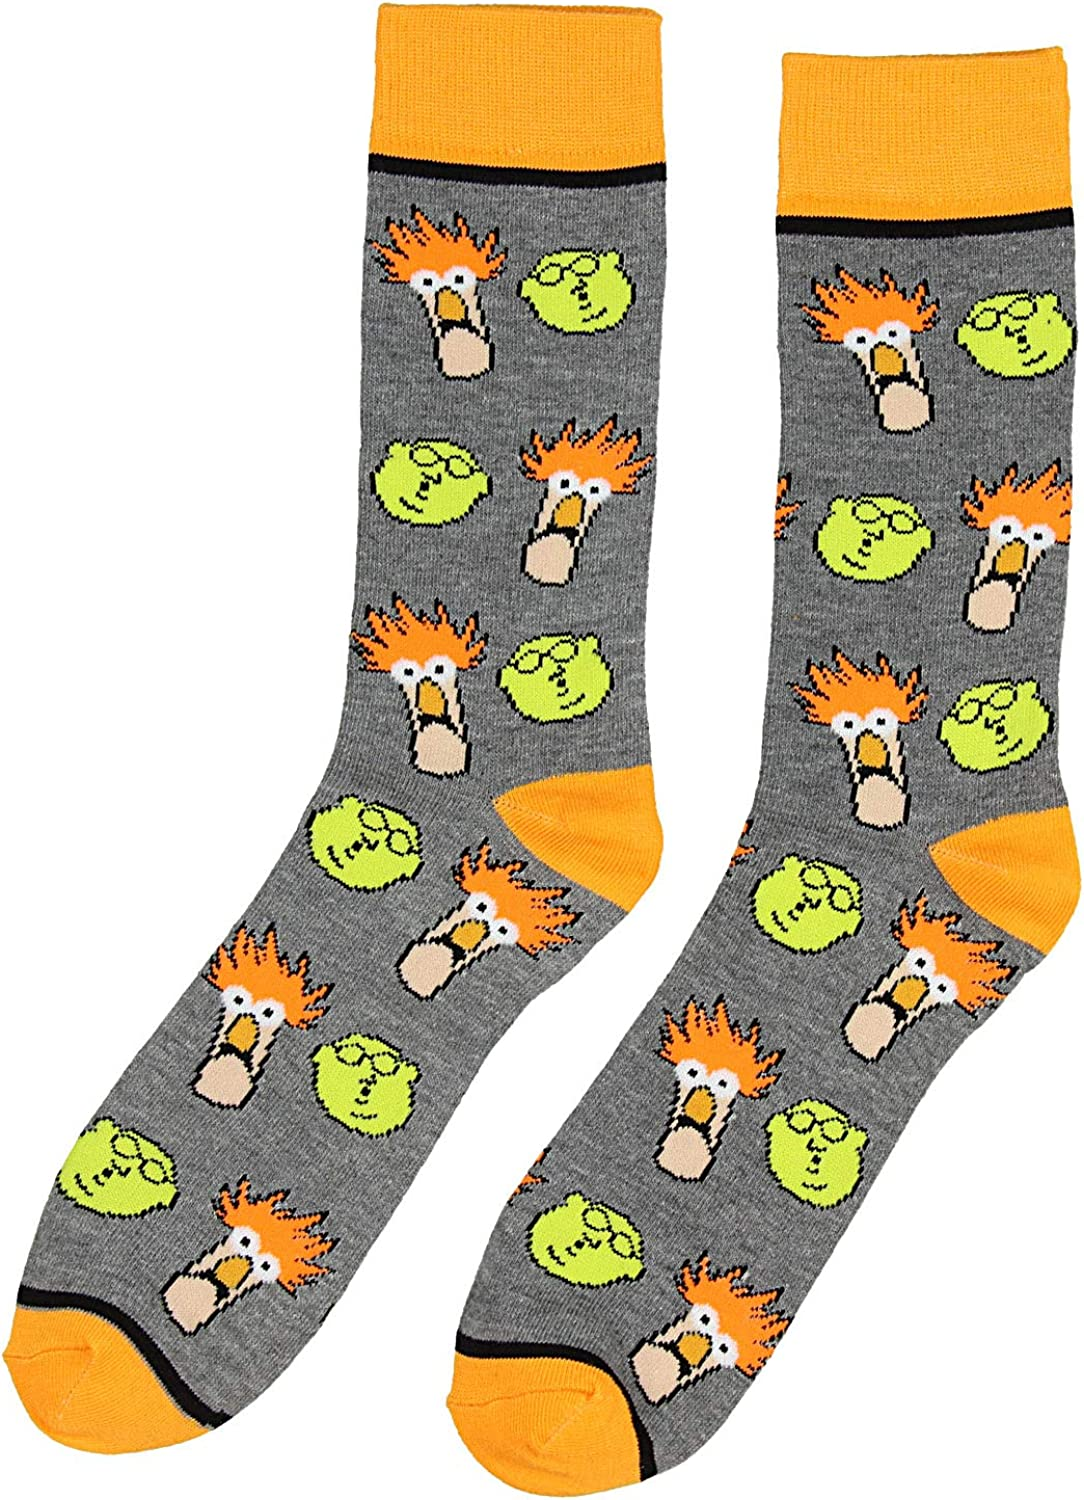 THE MUPPETS Kermit The FROG Gonzo ANIMAL New Men/'s 5 Pair CREW SOCKS SIZE 8-12